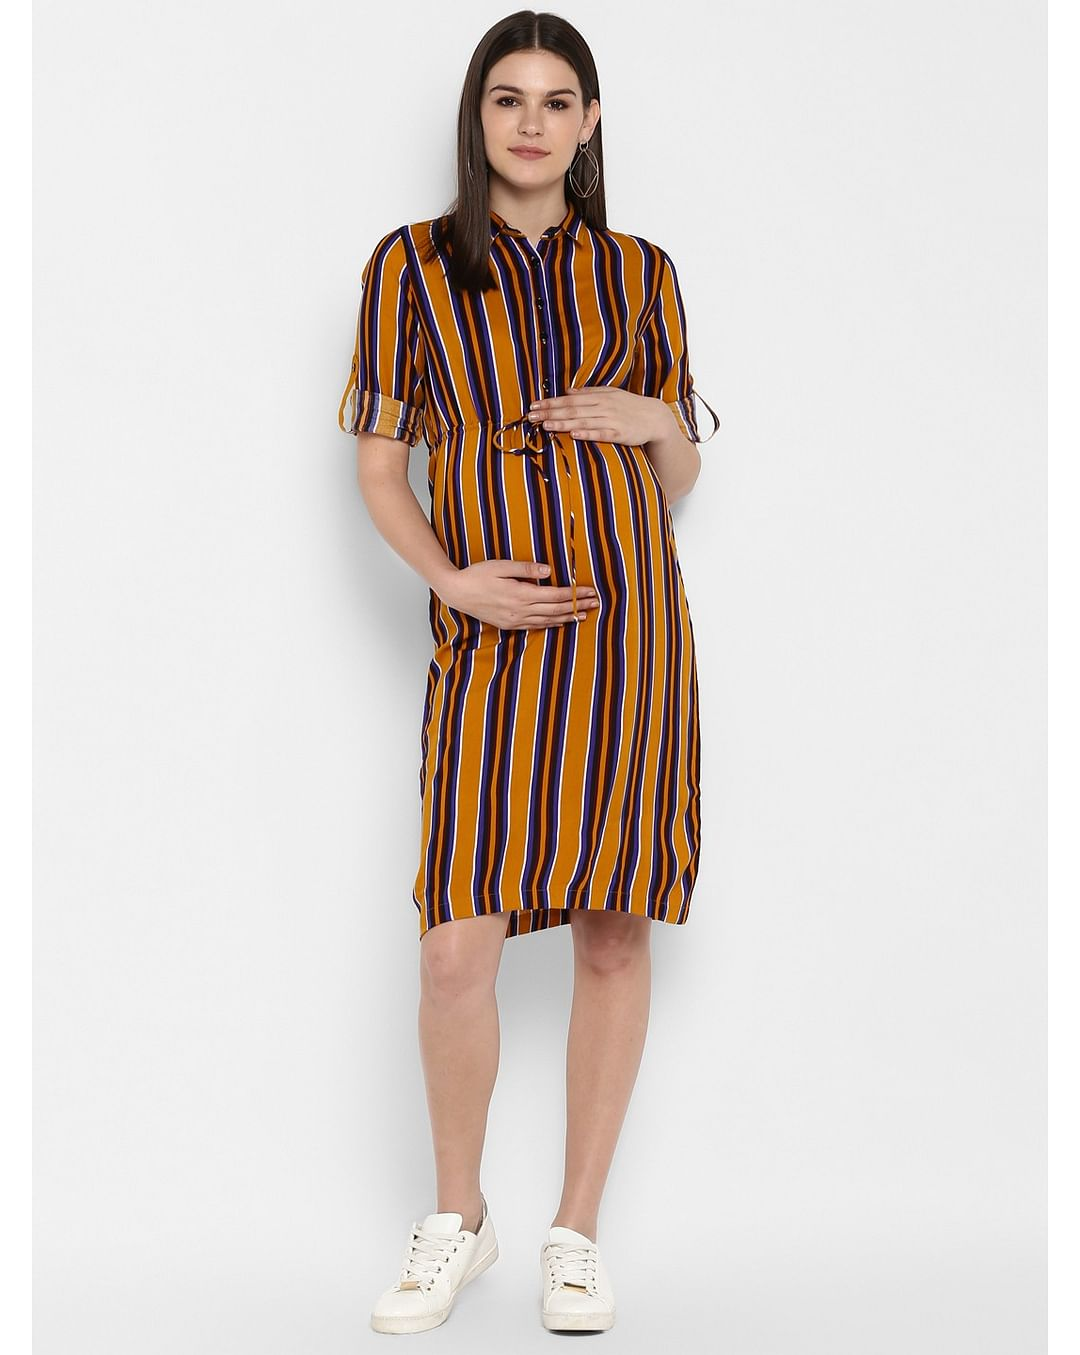 Mothercare | Momsoon women maternity three-fourth sleeves casual dress-Striped Yellow